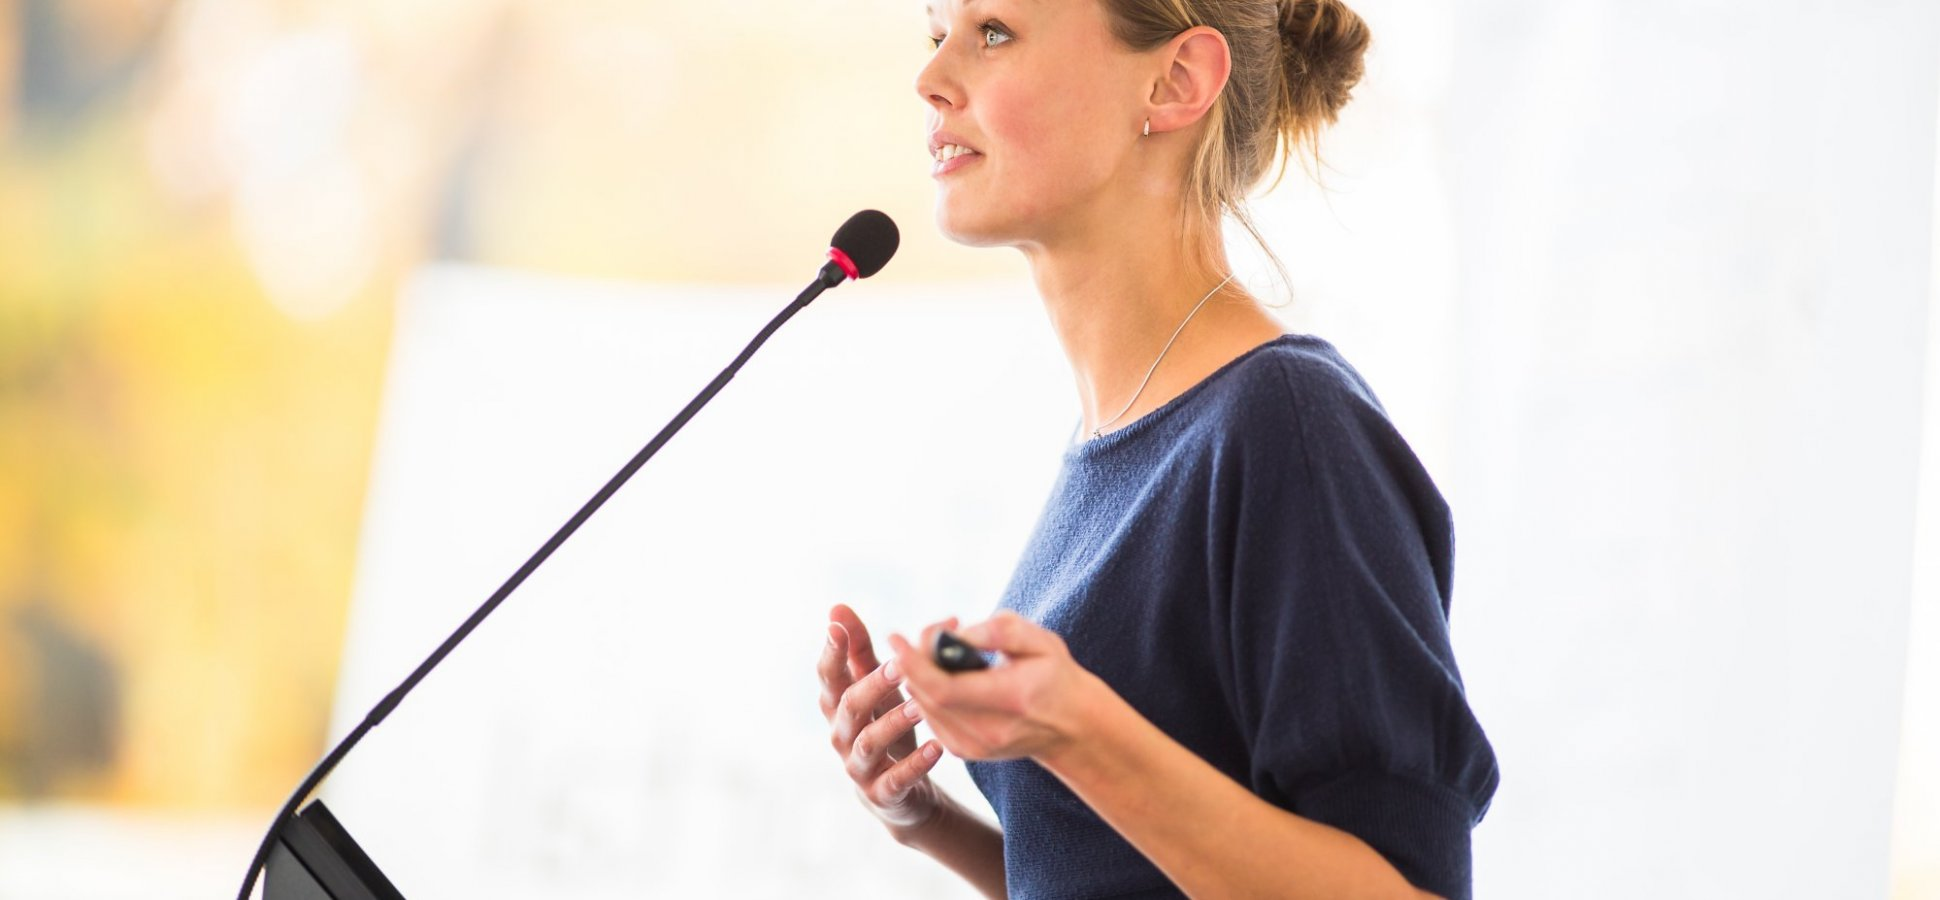 4 Simple Approaches to Overcoming Your Fear of Public Speaking